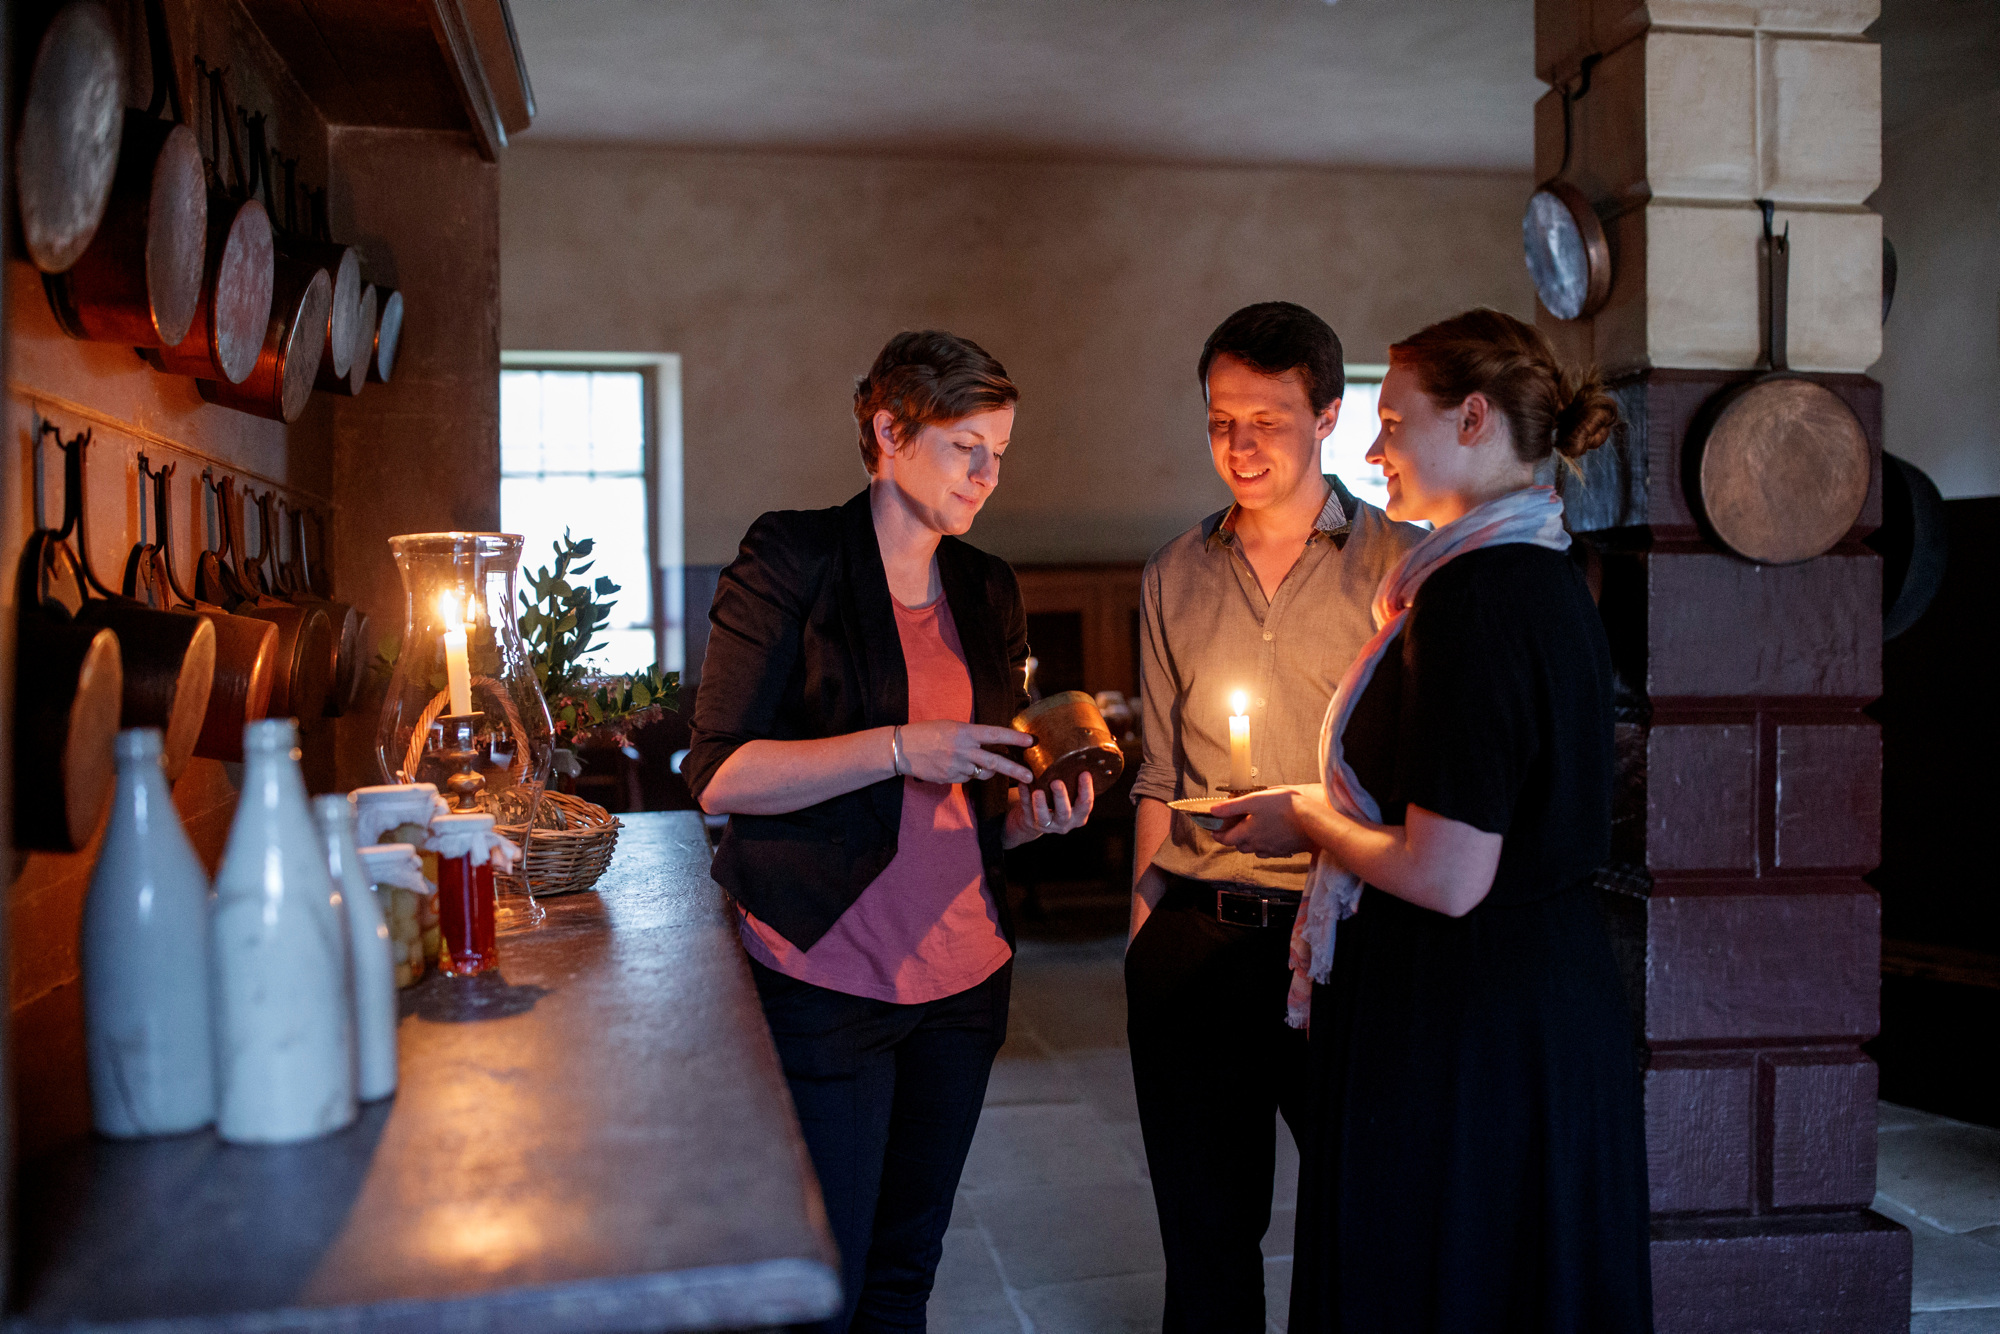 Woman guiding man and woman through kitchen by candlelight.